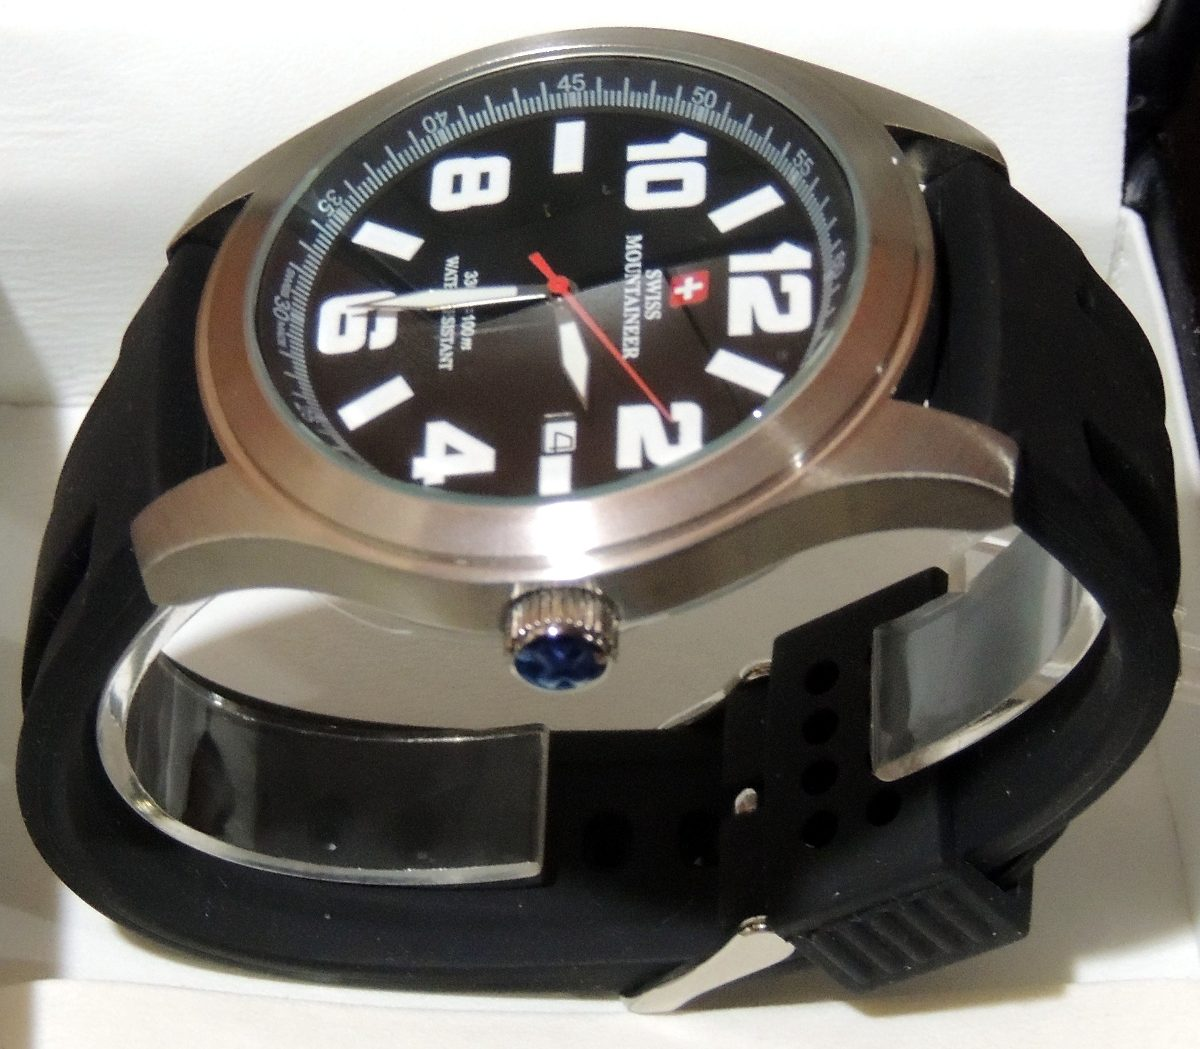 b3939a1a19a relogio suiço watch swiss mountaineer sml8040 48mm. Carregando zoom.